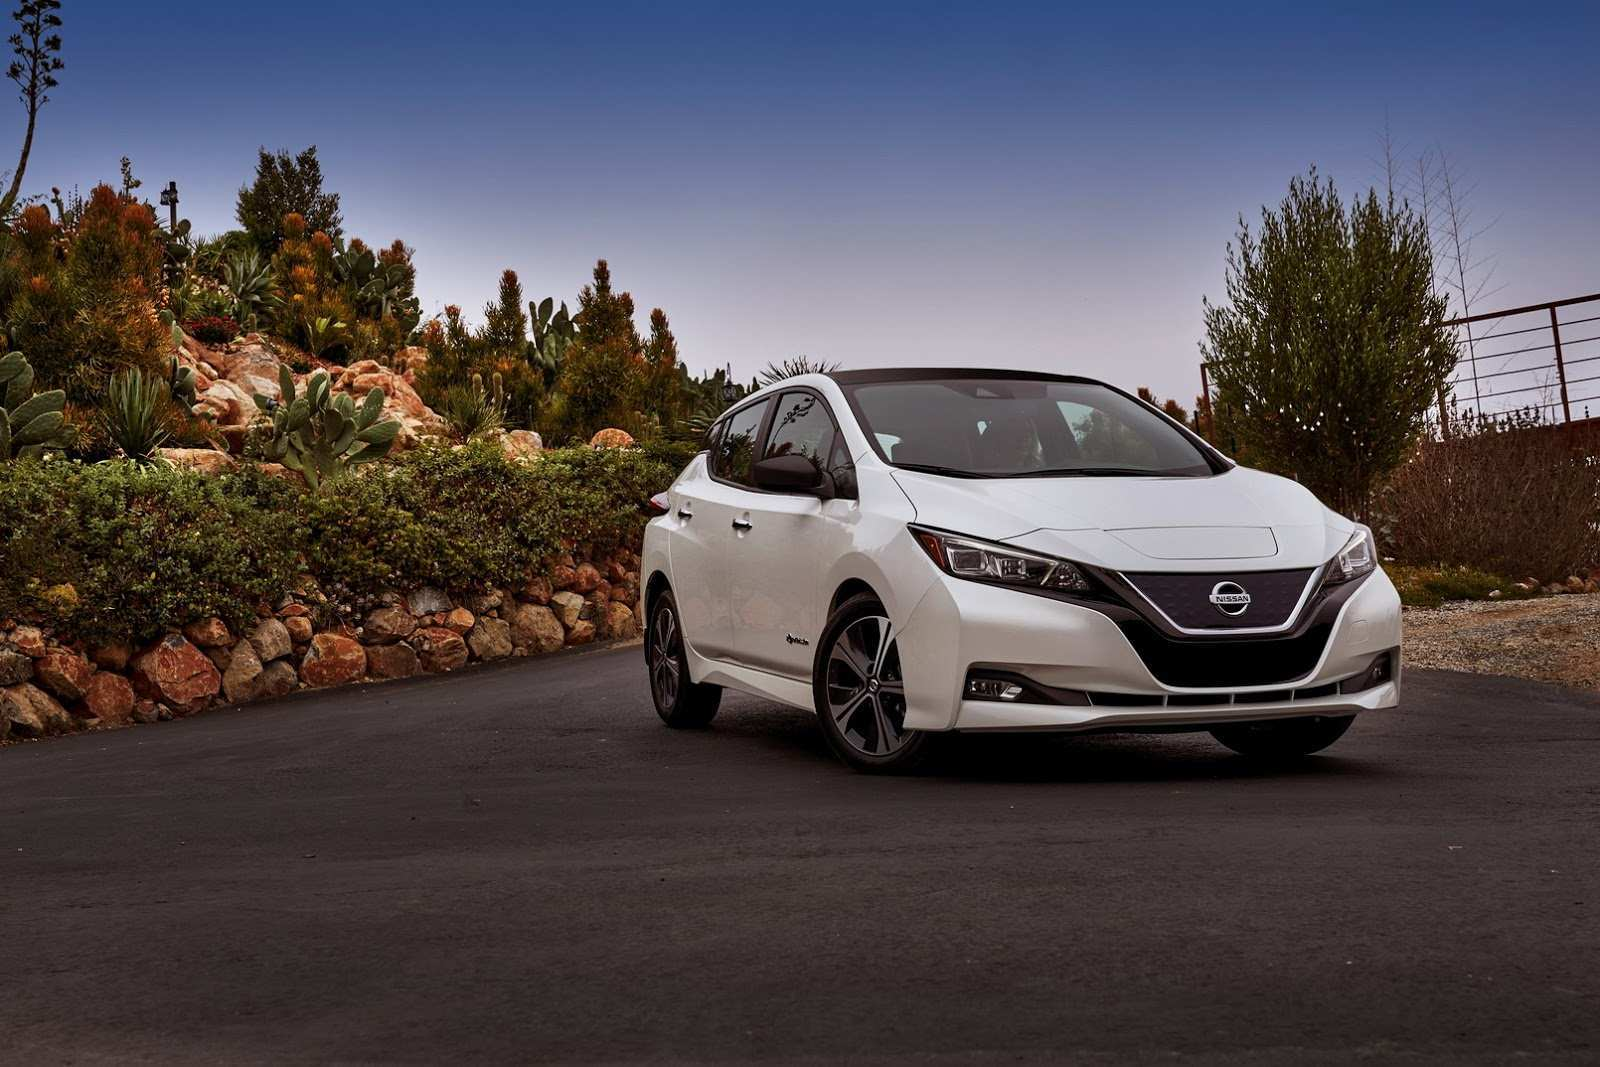 28 Concept of Nissan Leaf 2020 60 Kwh First Drive for Nissan Leaf 2020 60 Kwh